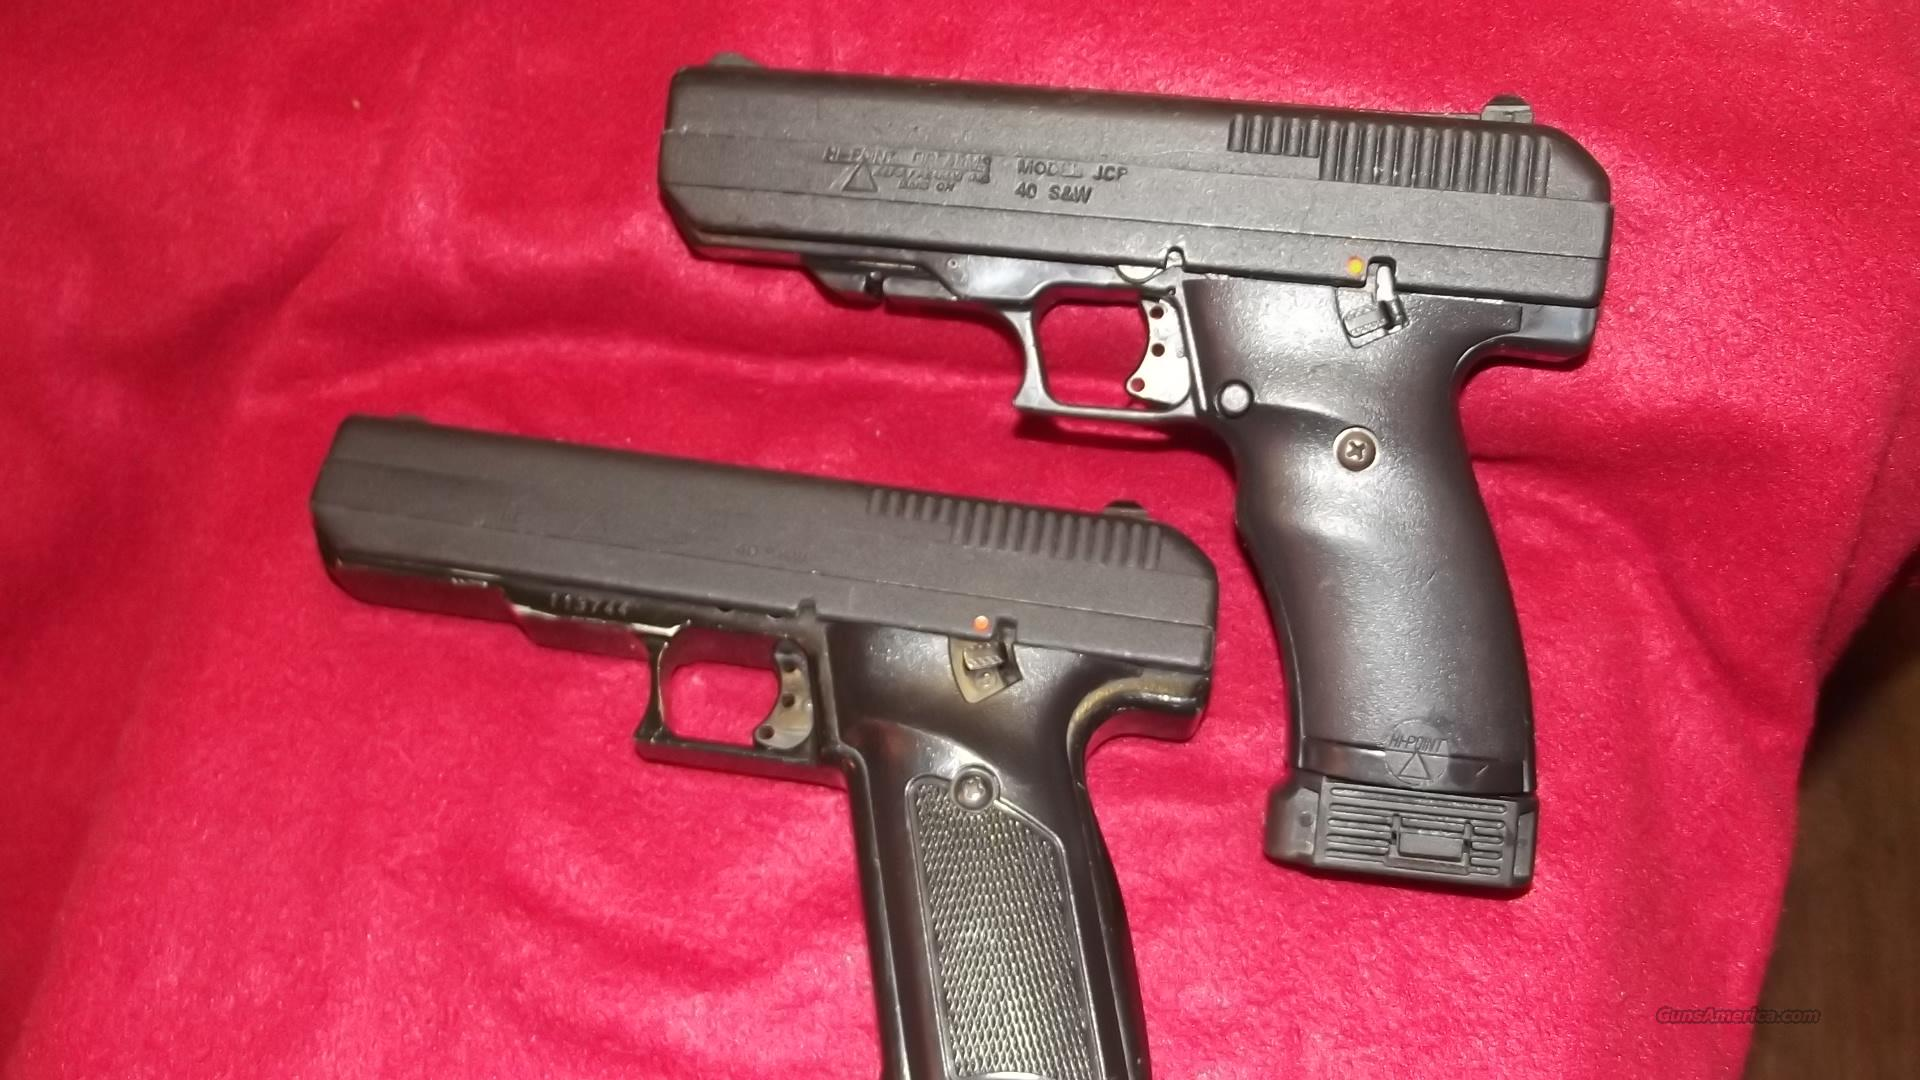 HI POINT  40 CALIBER  Guns > Pistols > Hi Point Pistols